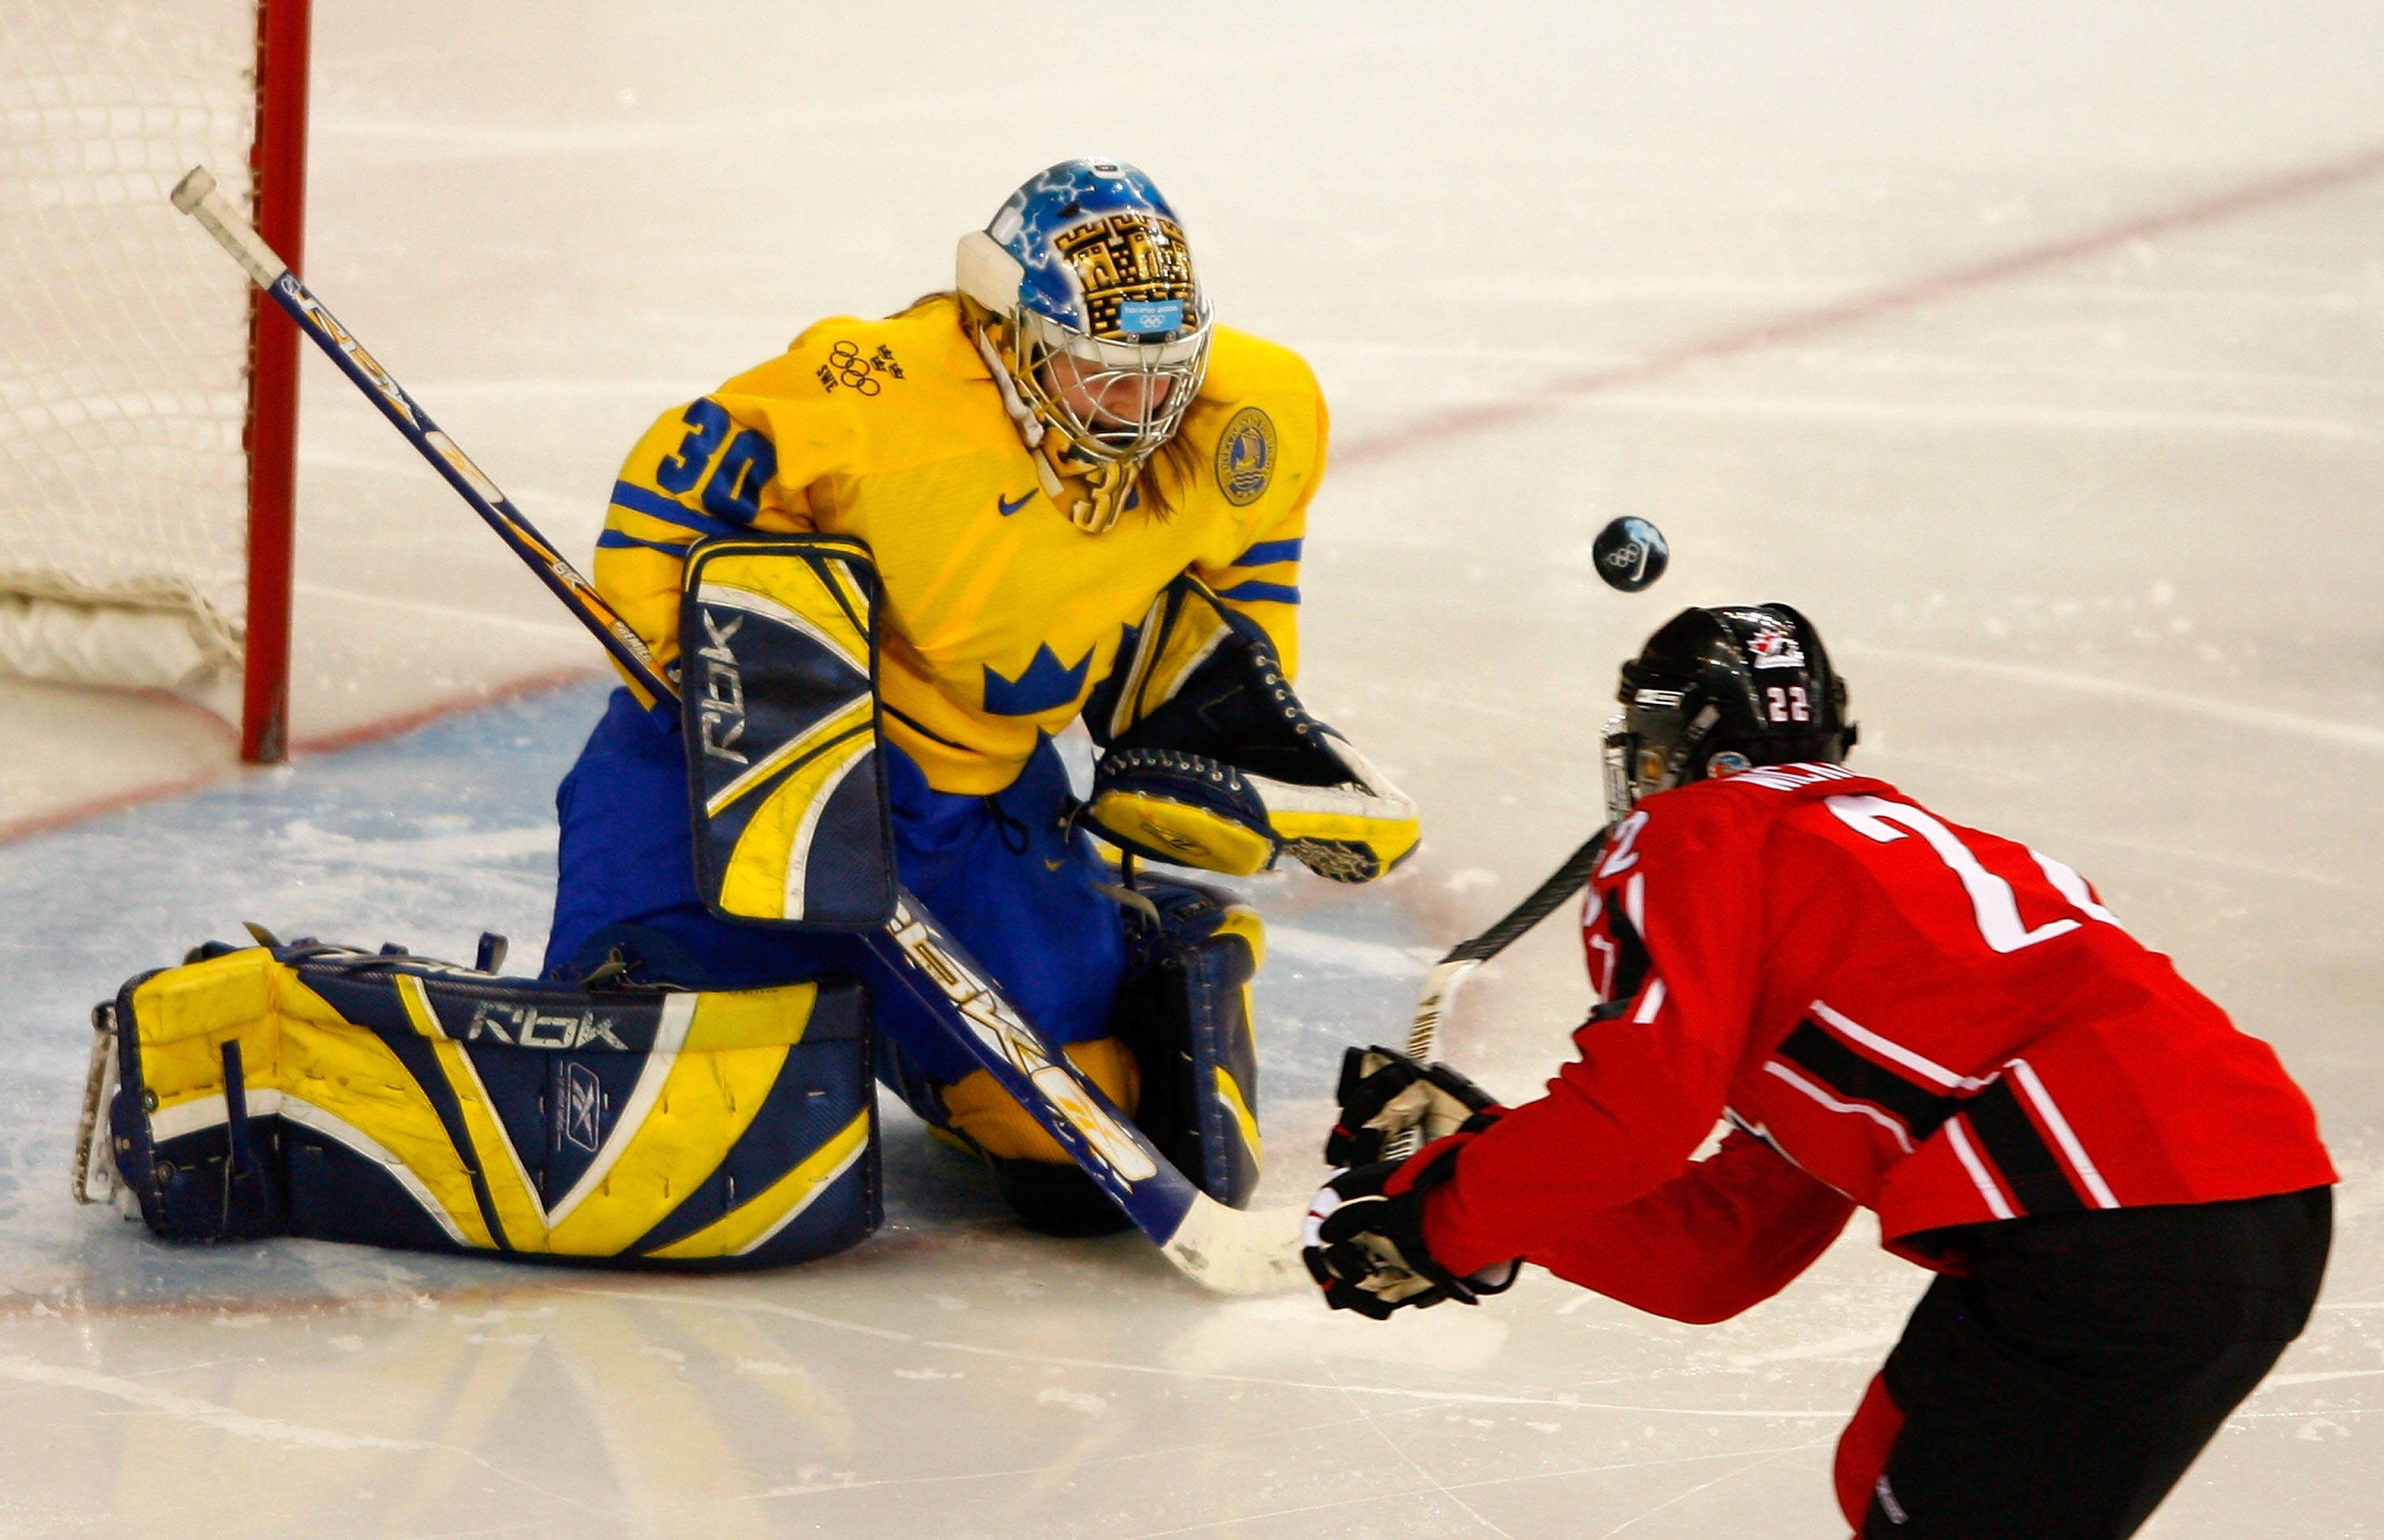 Hayley Wickenheiser #22 of Canada takes a shot on goal in front of goalie Kim Martin #30 of Sweden during the final of the women's ice hockey during Day 10 of the Turin 2006 Winter Olympic Games.